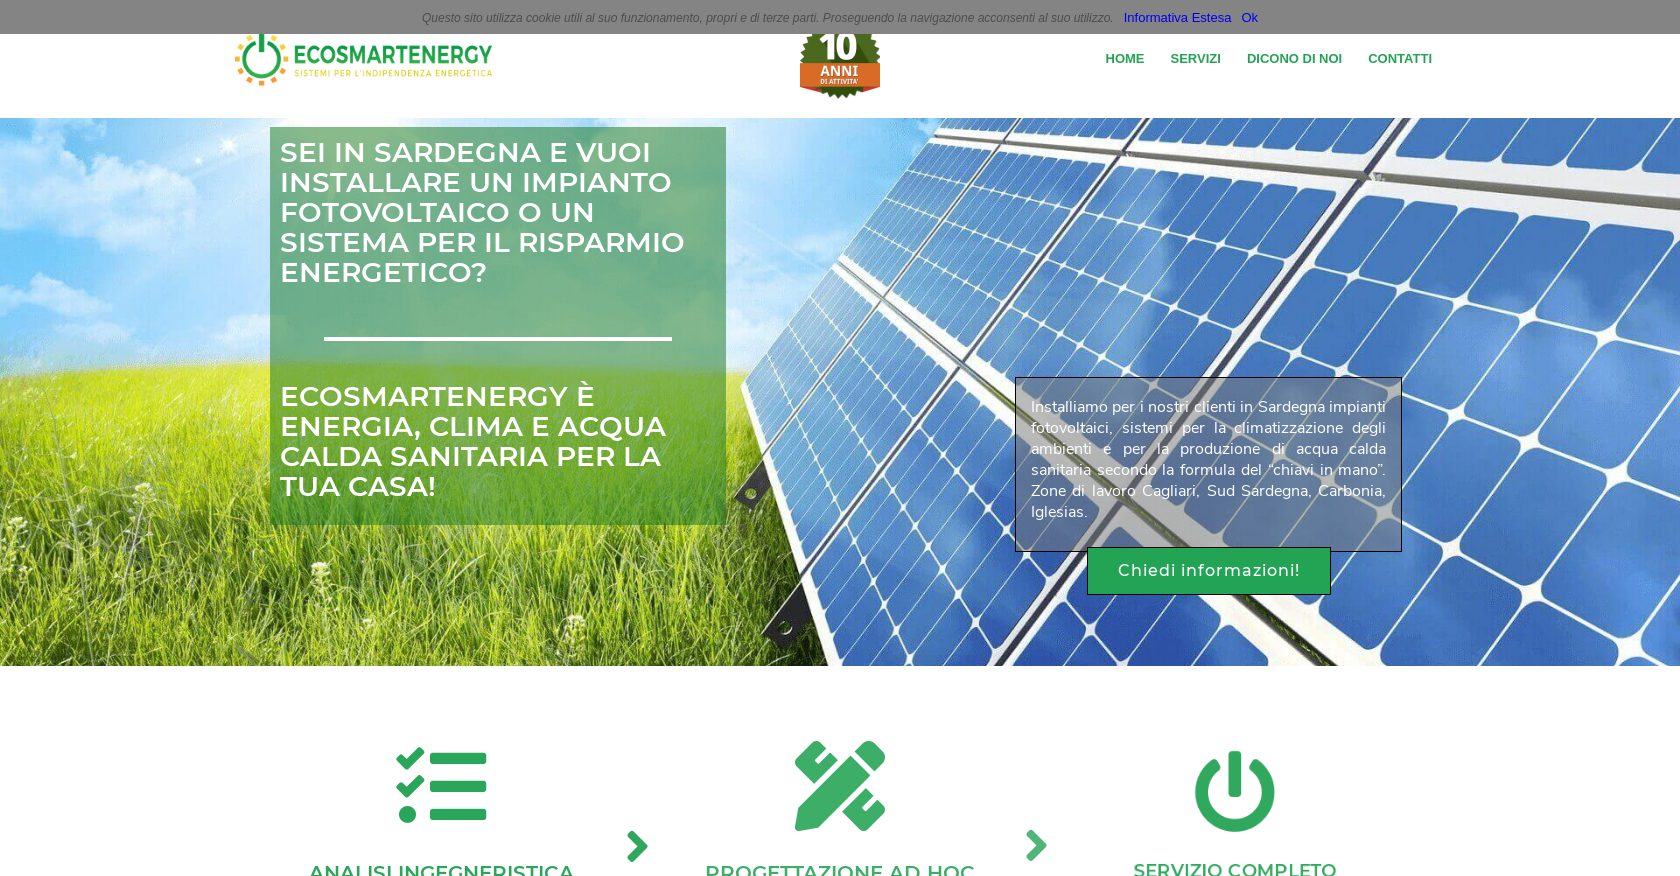 http://www.ecosmartenergy.it